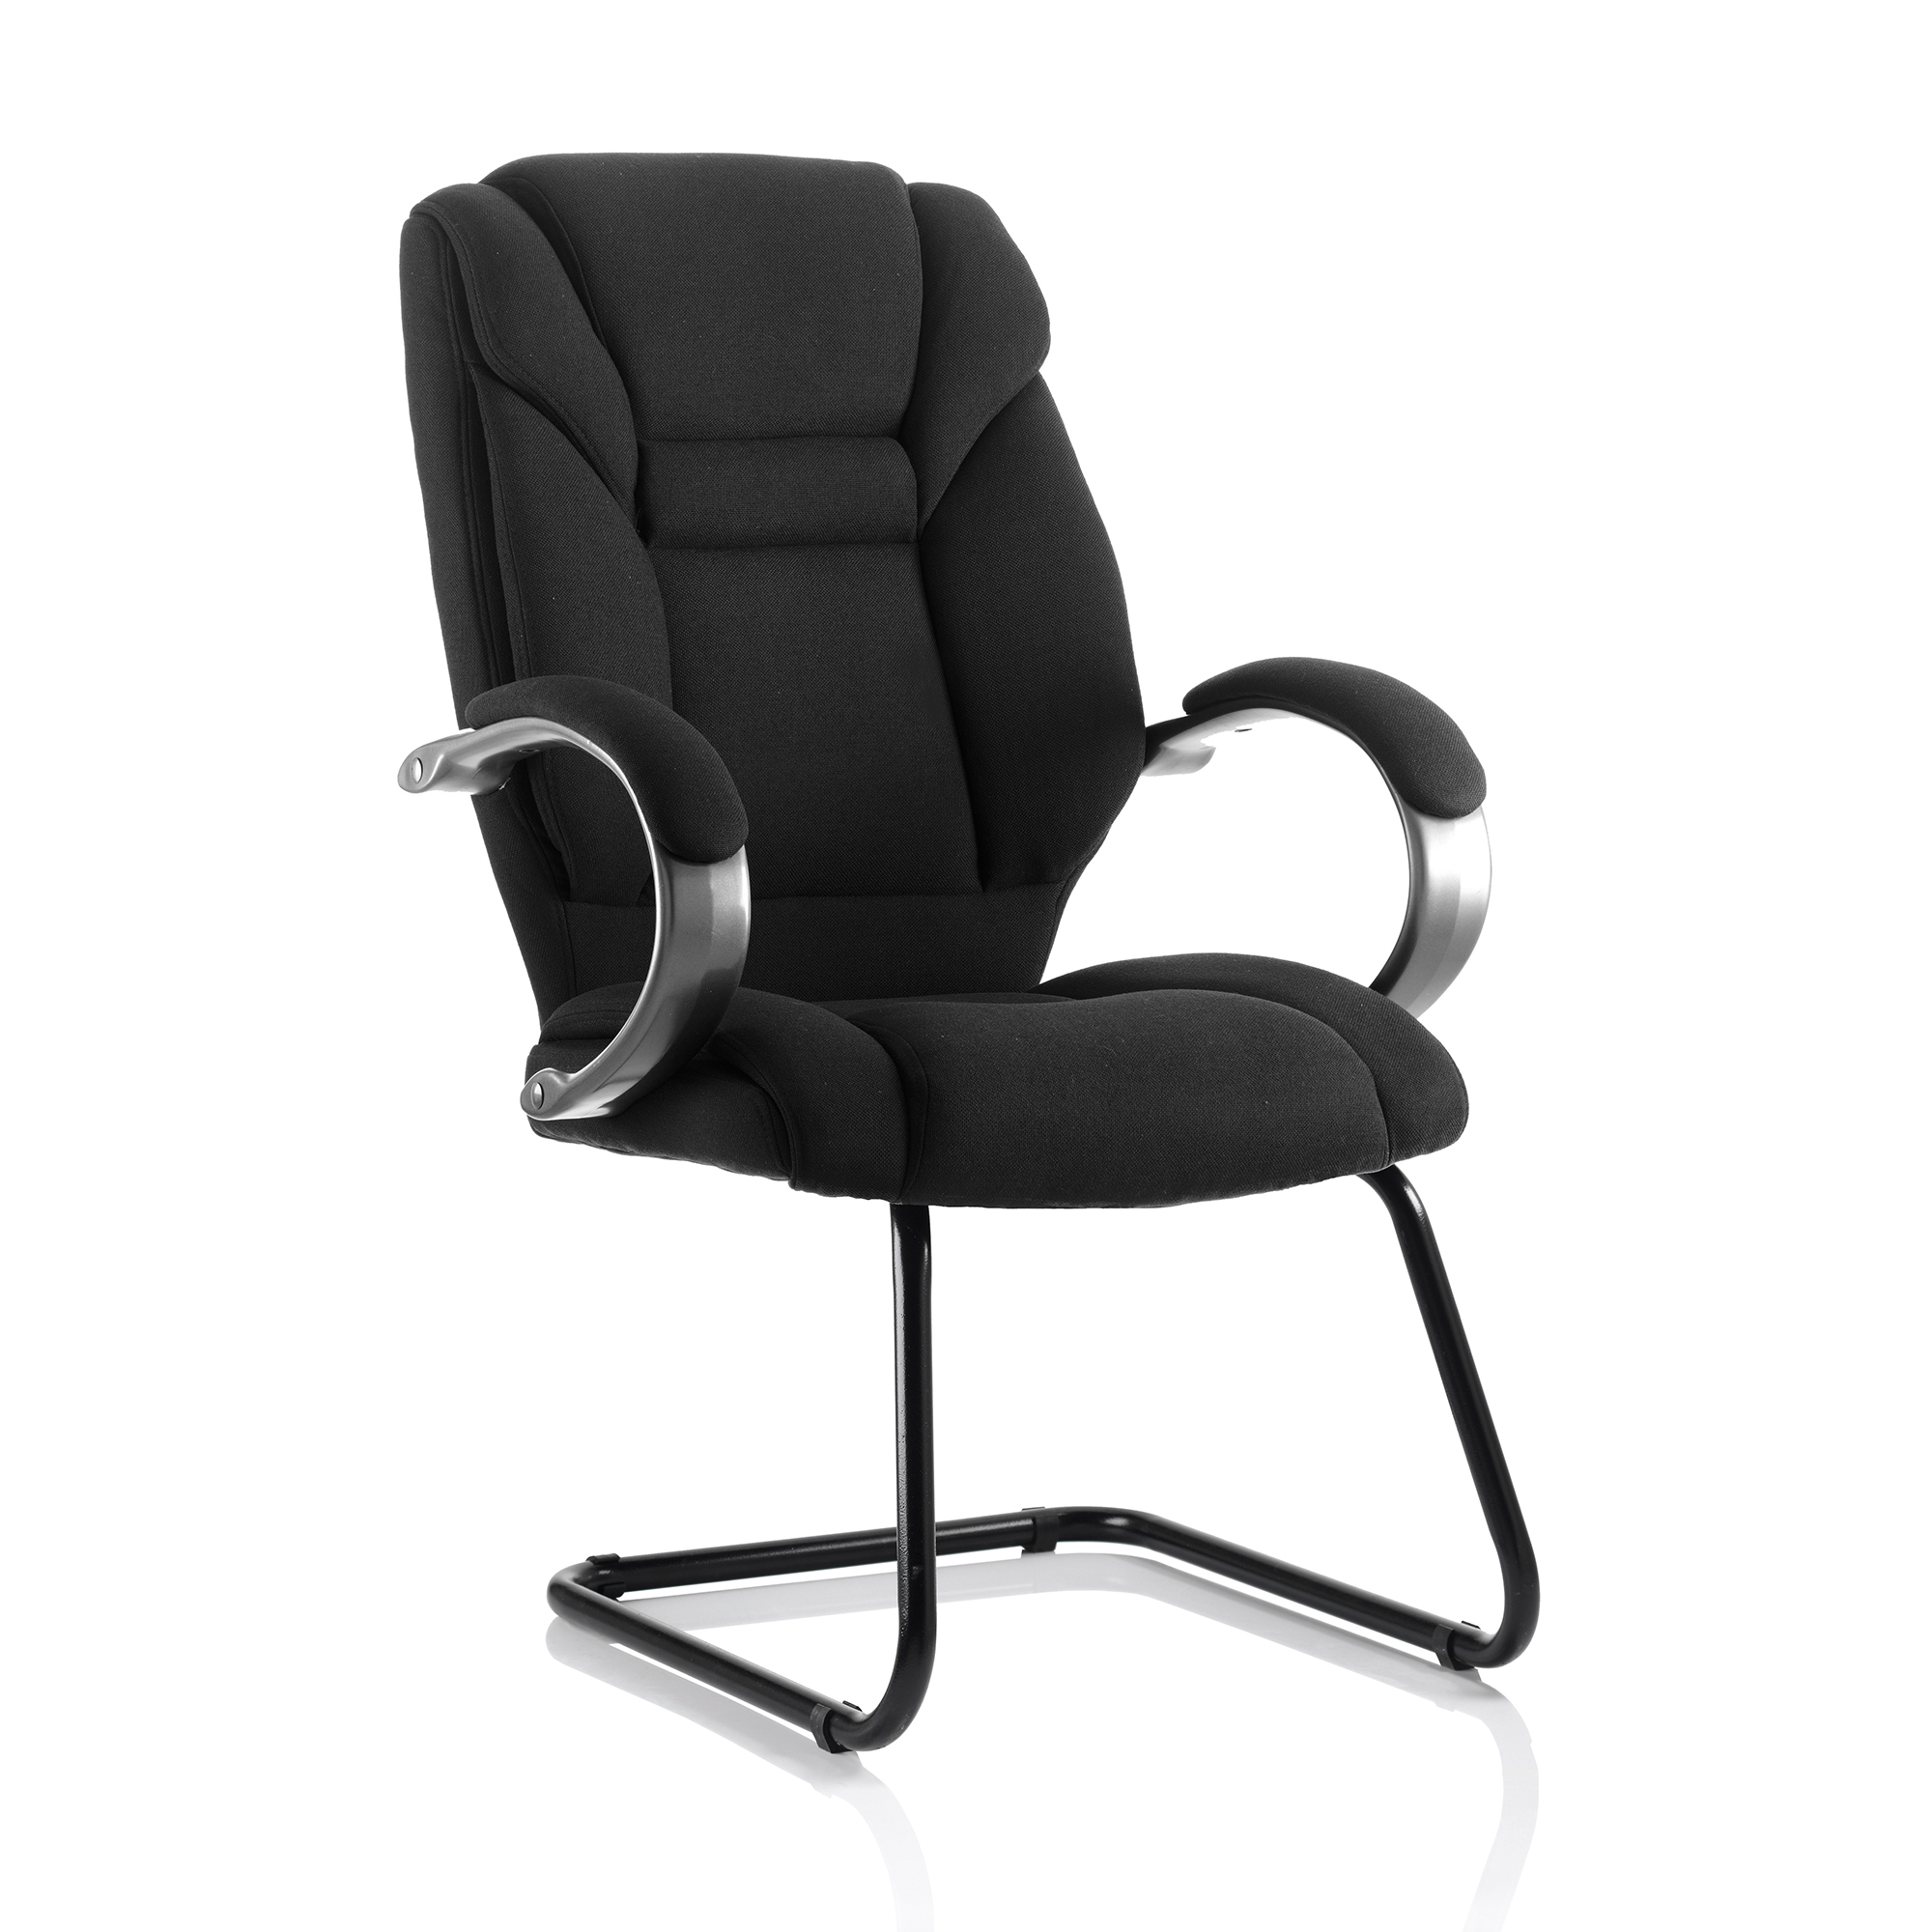 Guest seating Trexus Galloway Cantilever Chair With Arms Fabric Black Ref KC0122